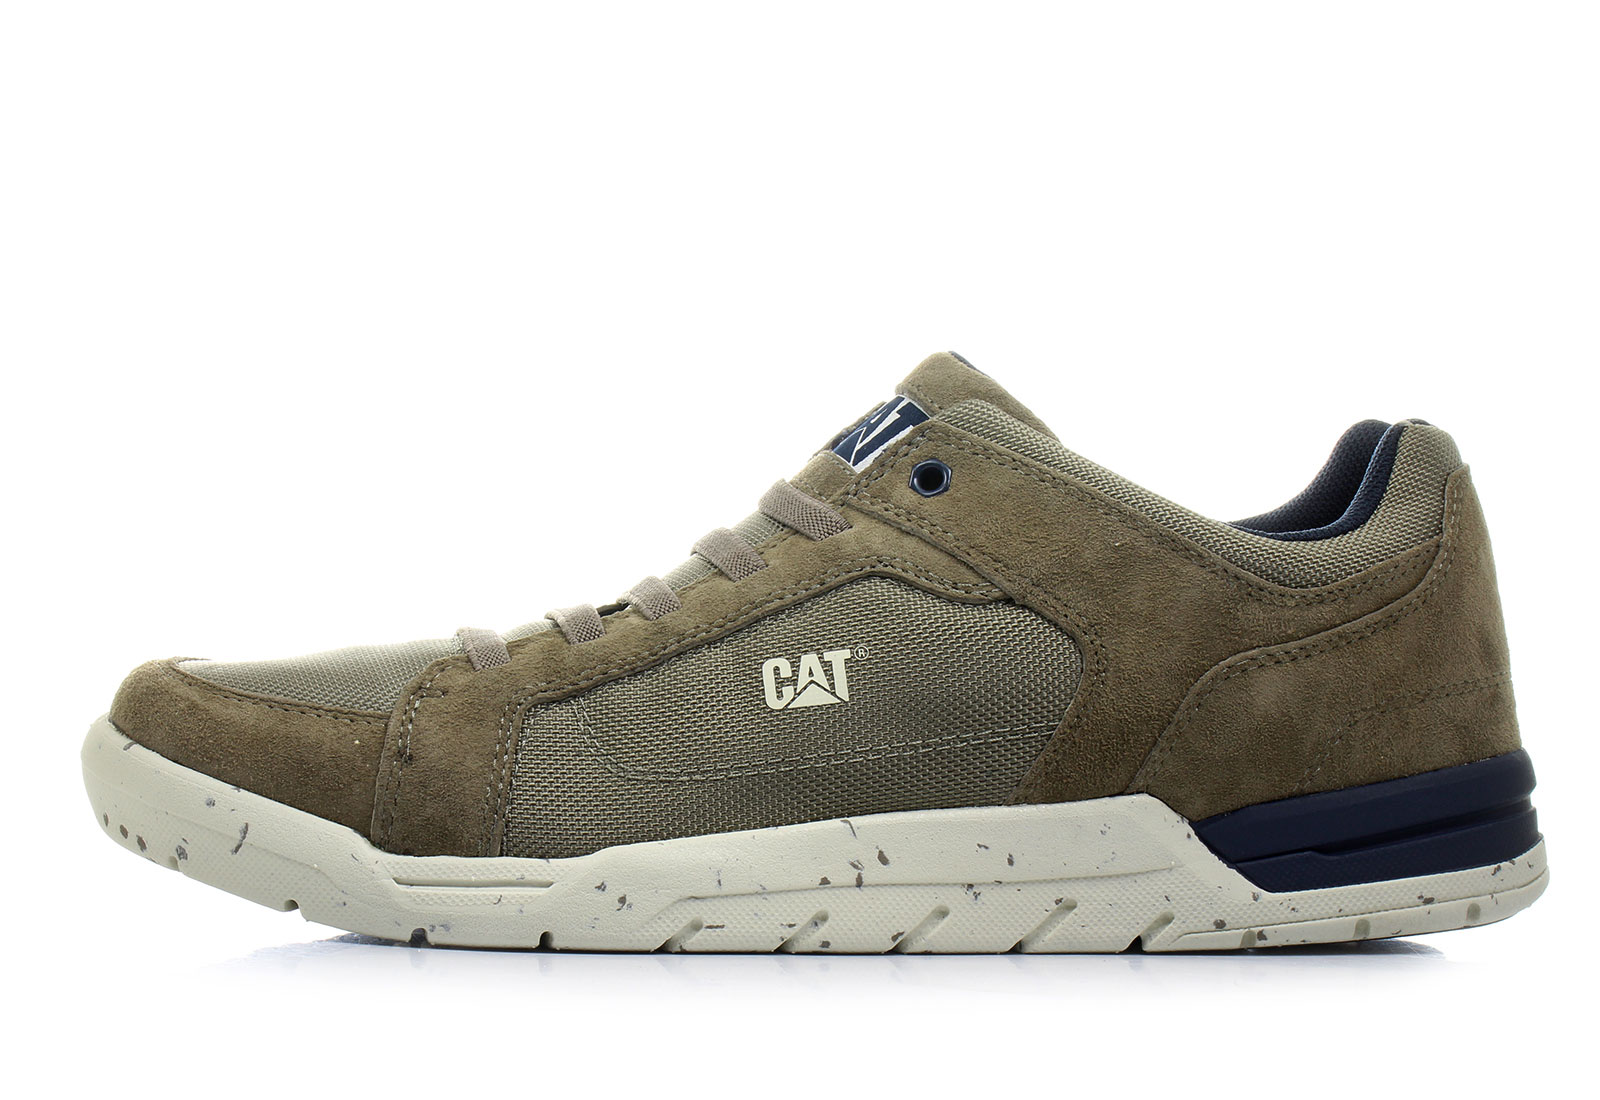 Cat Shoes Indent 718224 Gry Online Shop For Sneakers